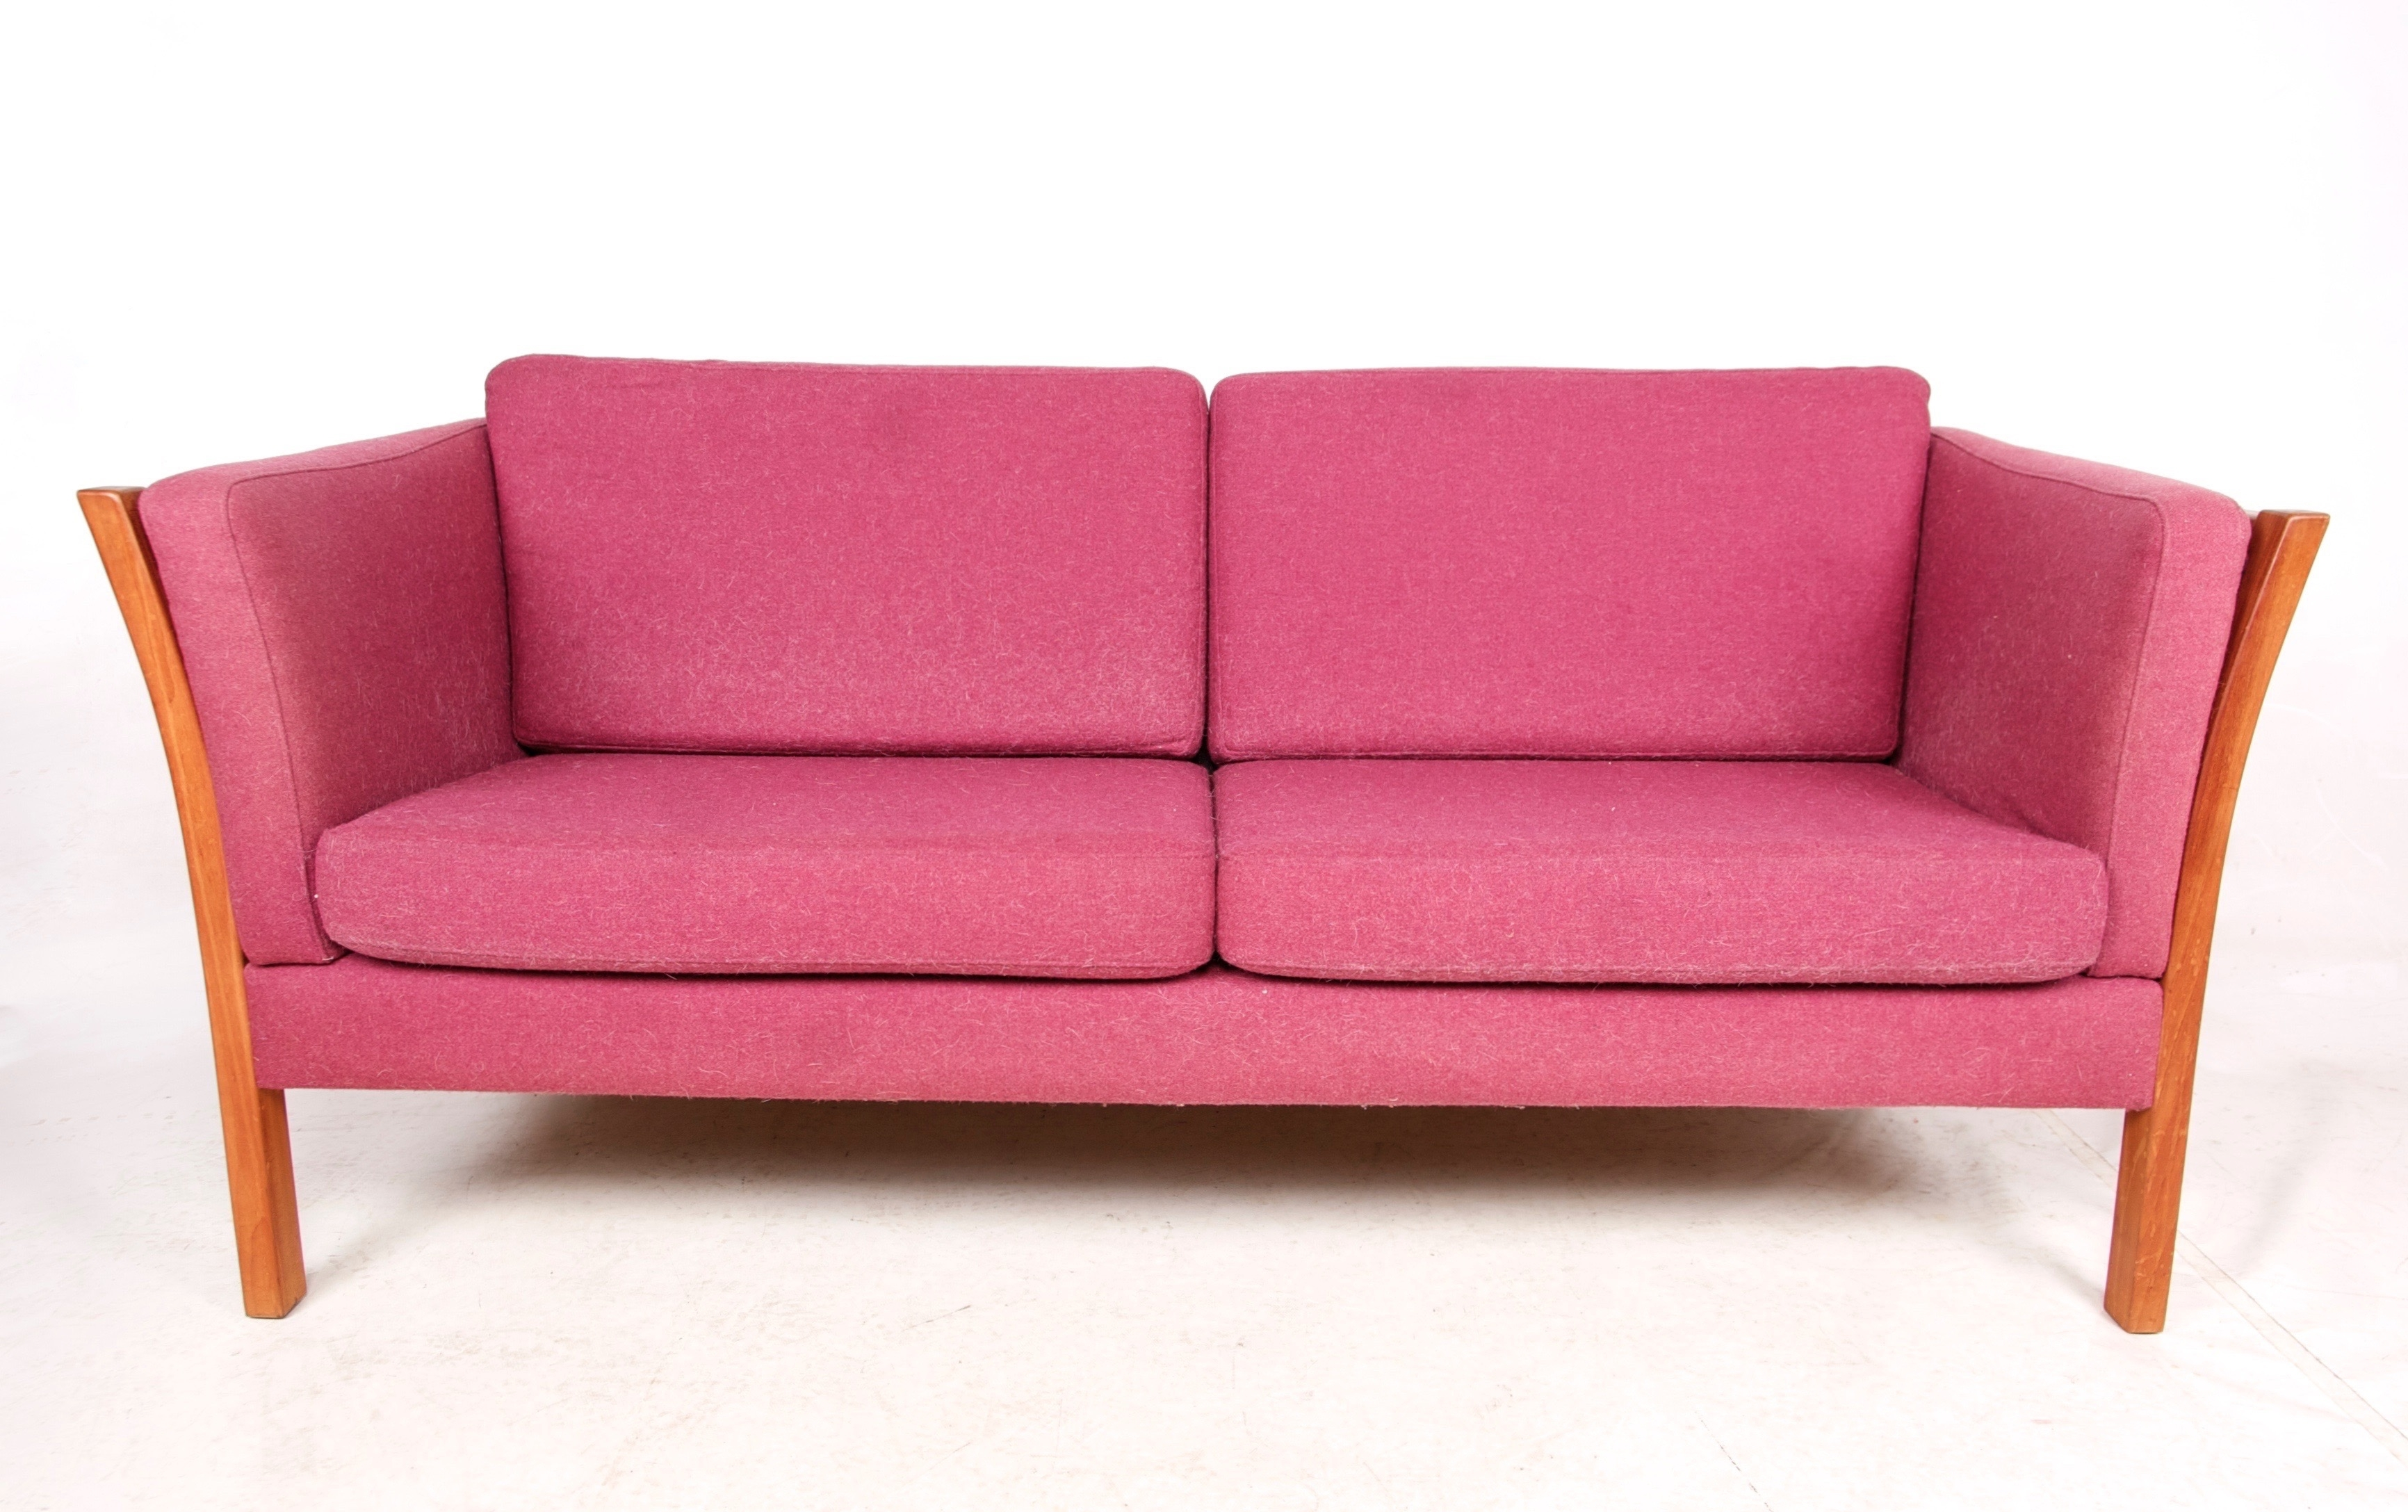 Cheap Retro Sofas Throughout Most Recent Pink Sofa Ads Buy Sell Used Find Right Price Here Retro Vintage (View 5 of 15)